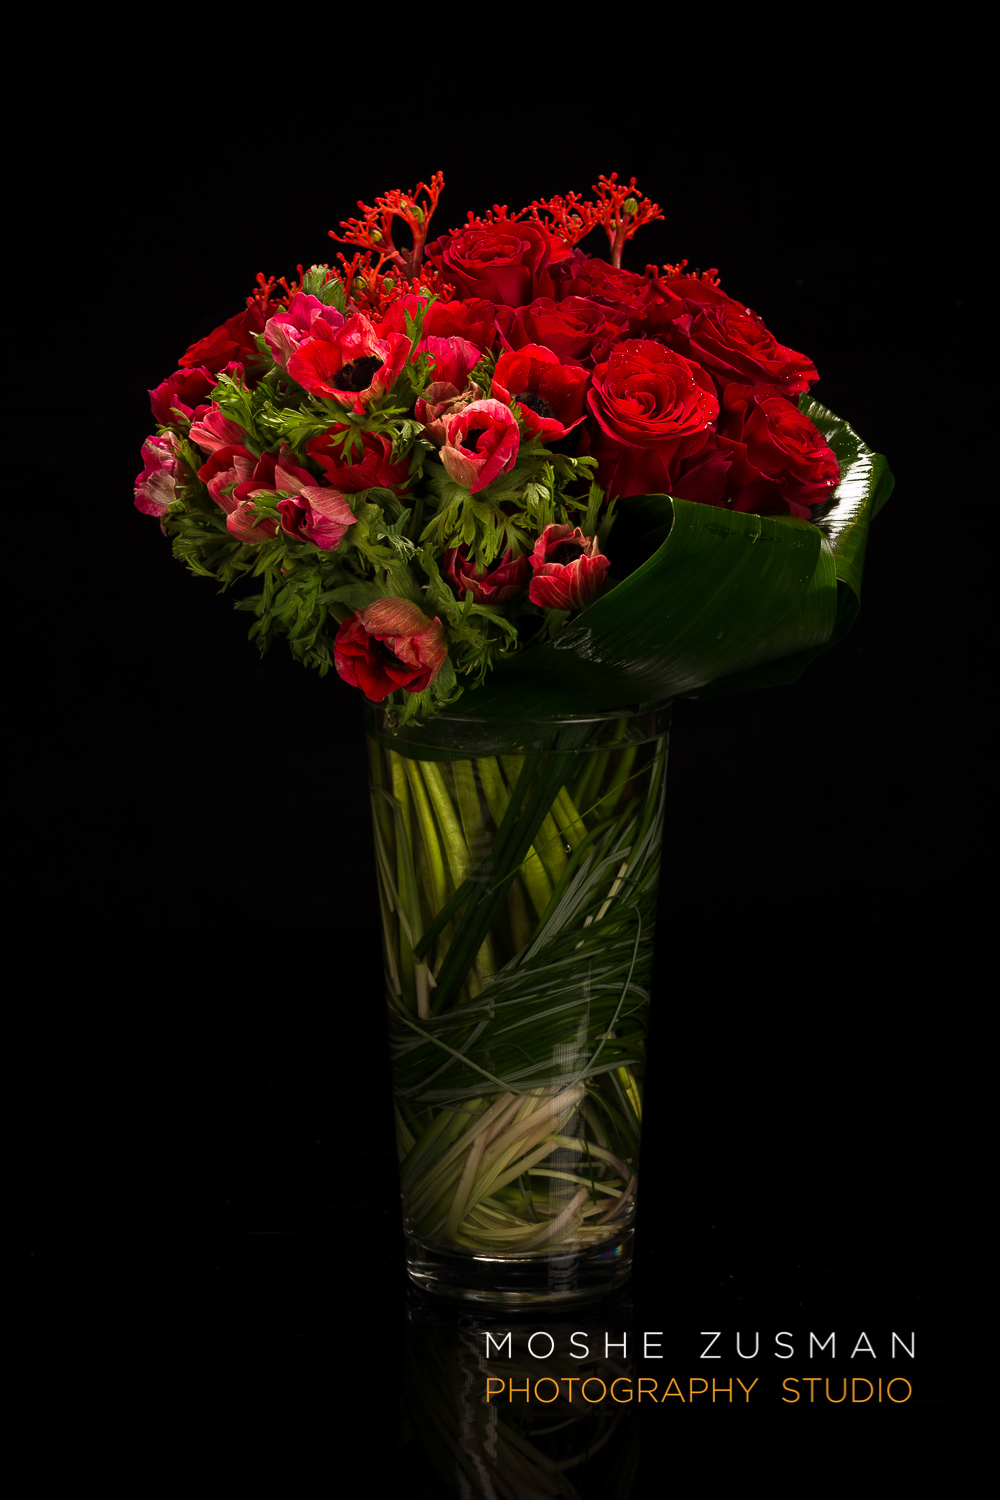 May_Flowers_Reston_Moshe_Zusman_Photography_Valentines_Flowers-04.jpg